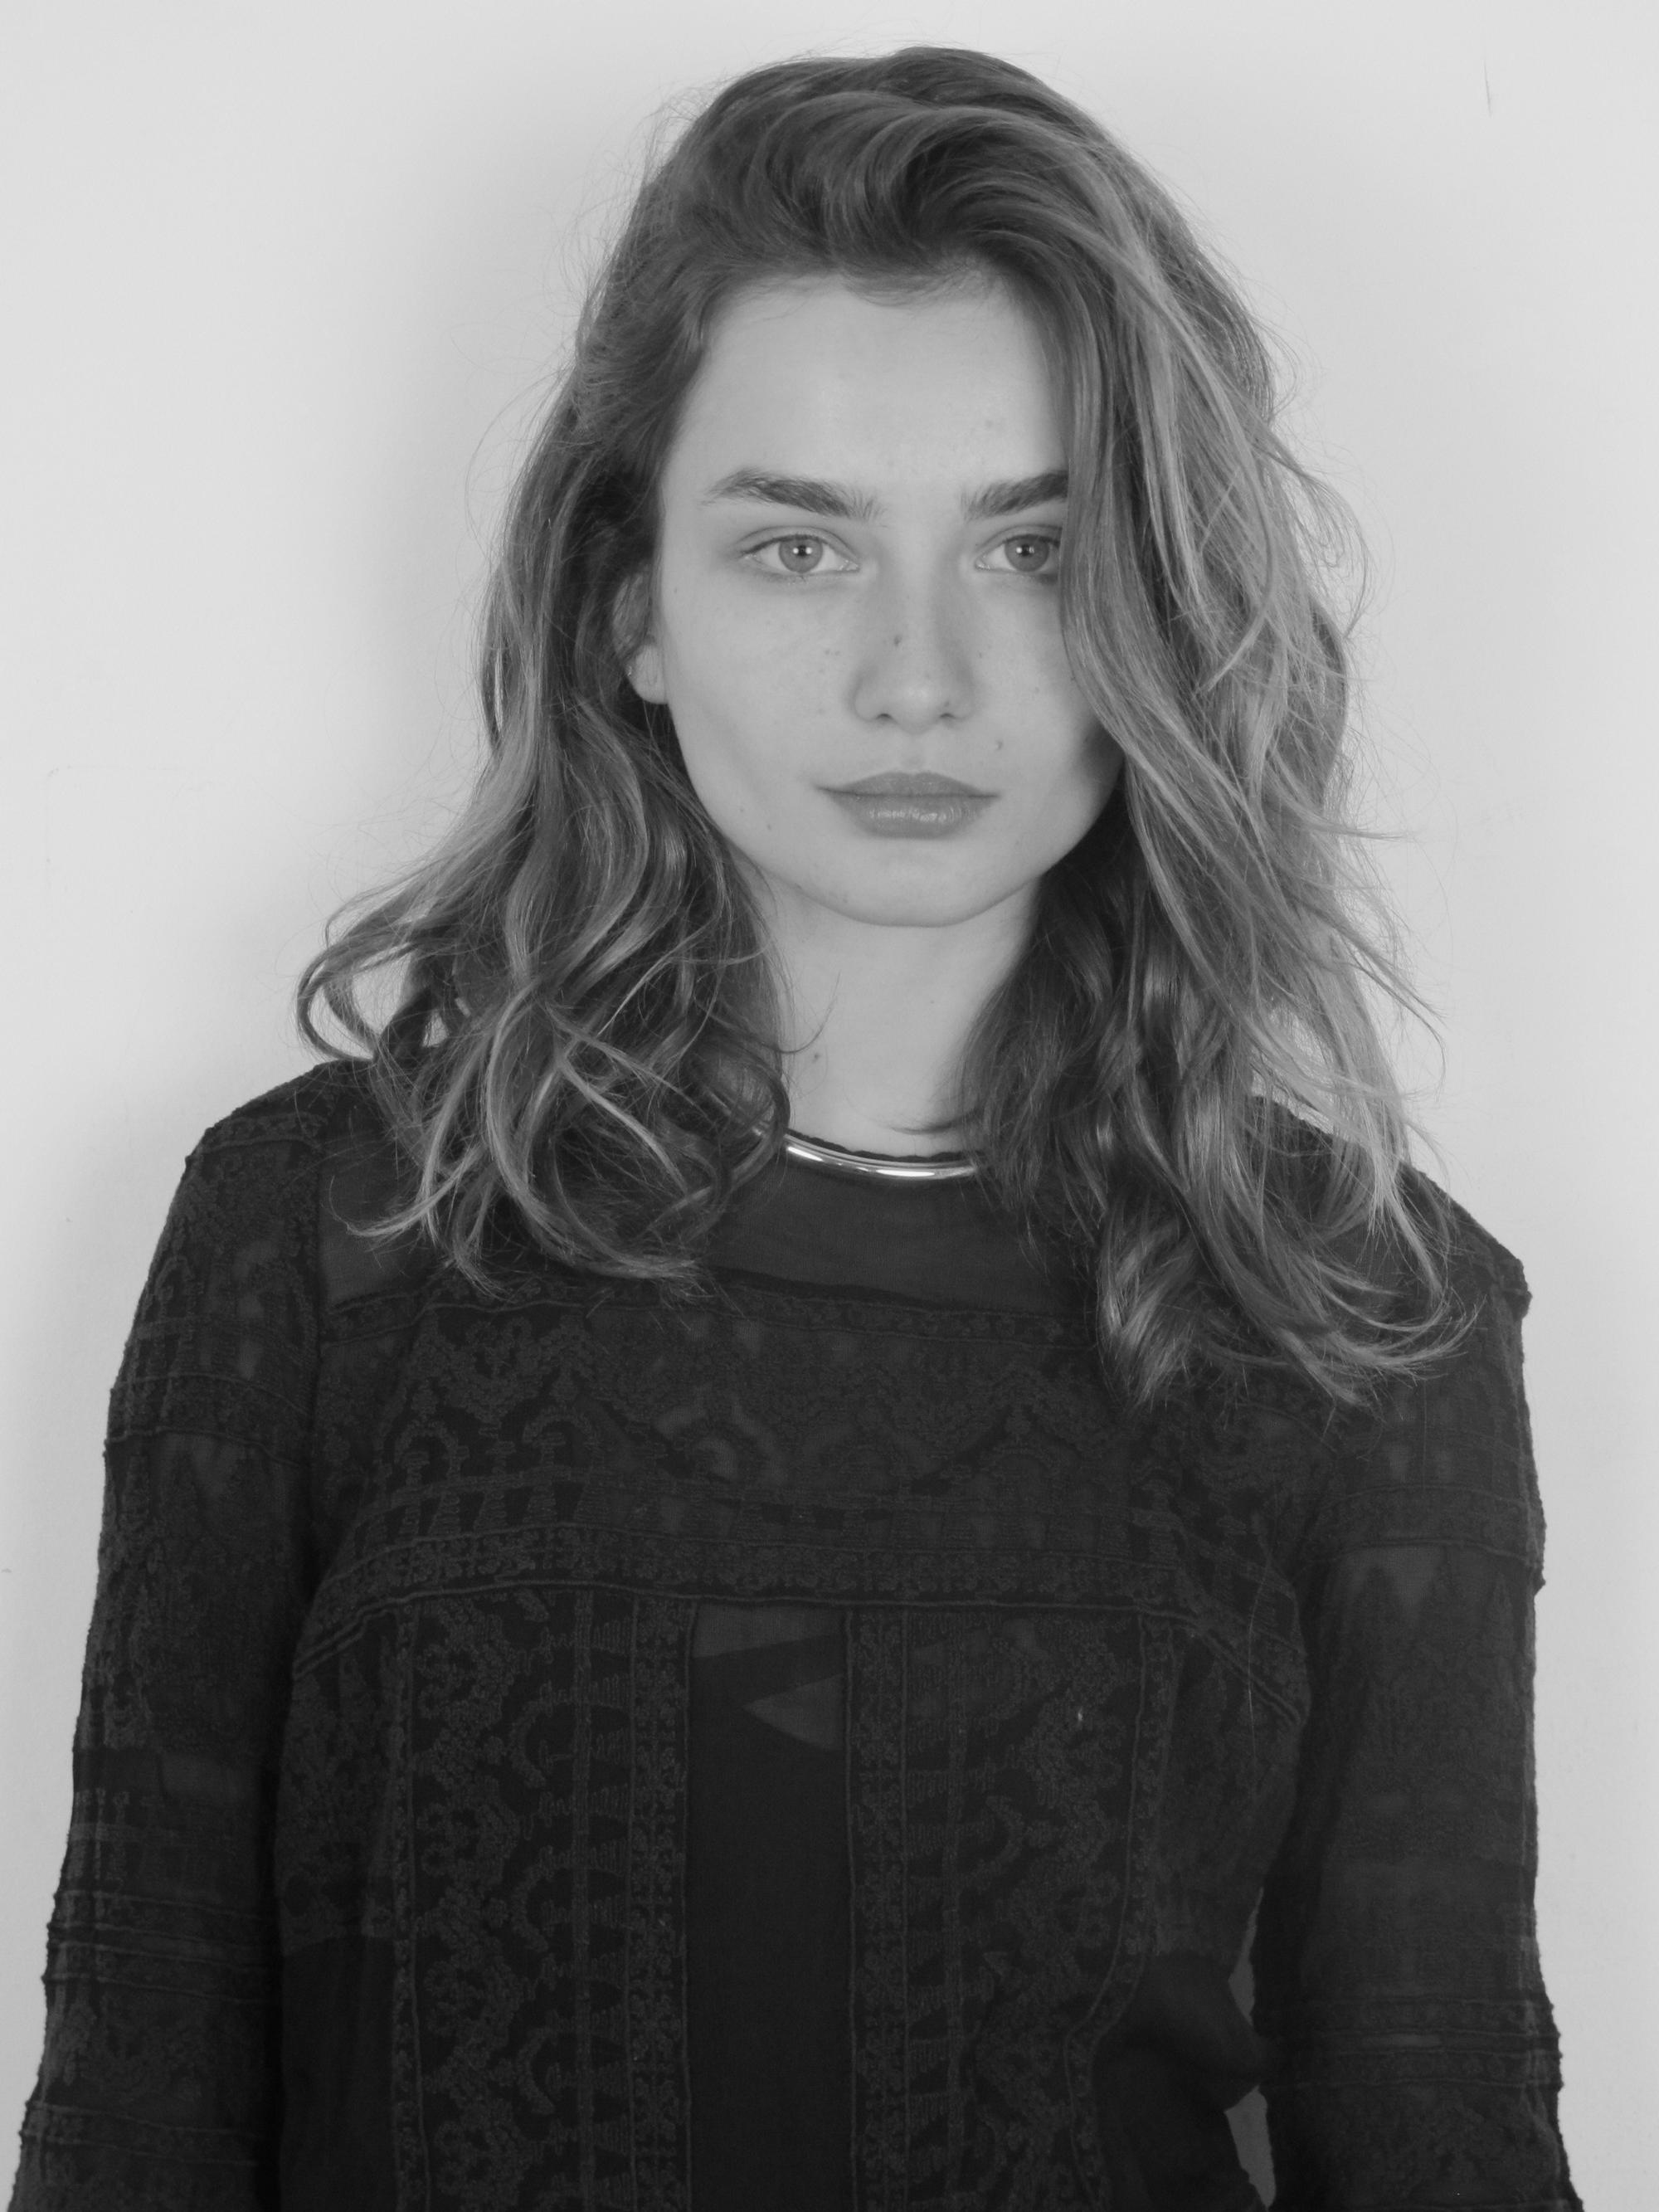 We speak to Romanian model Andreea Diaconu to discover the causes close to her heart.